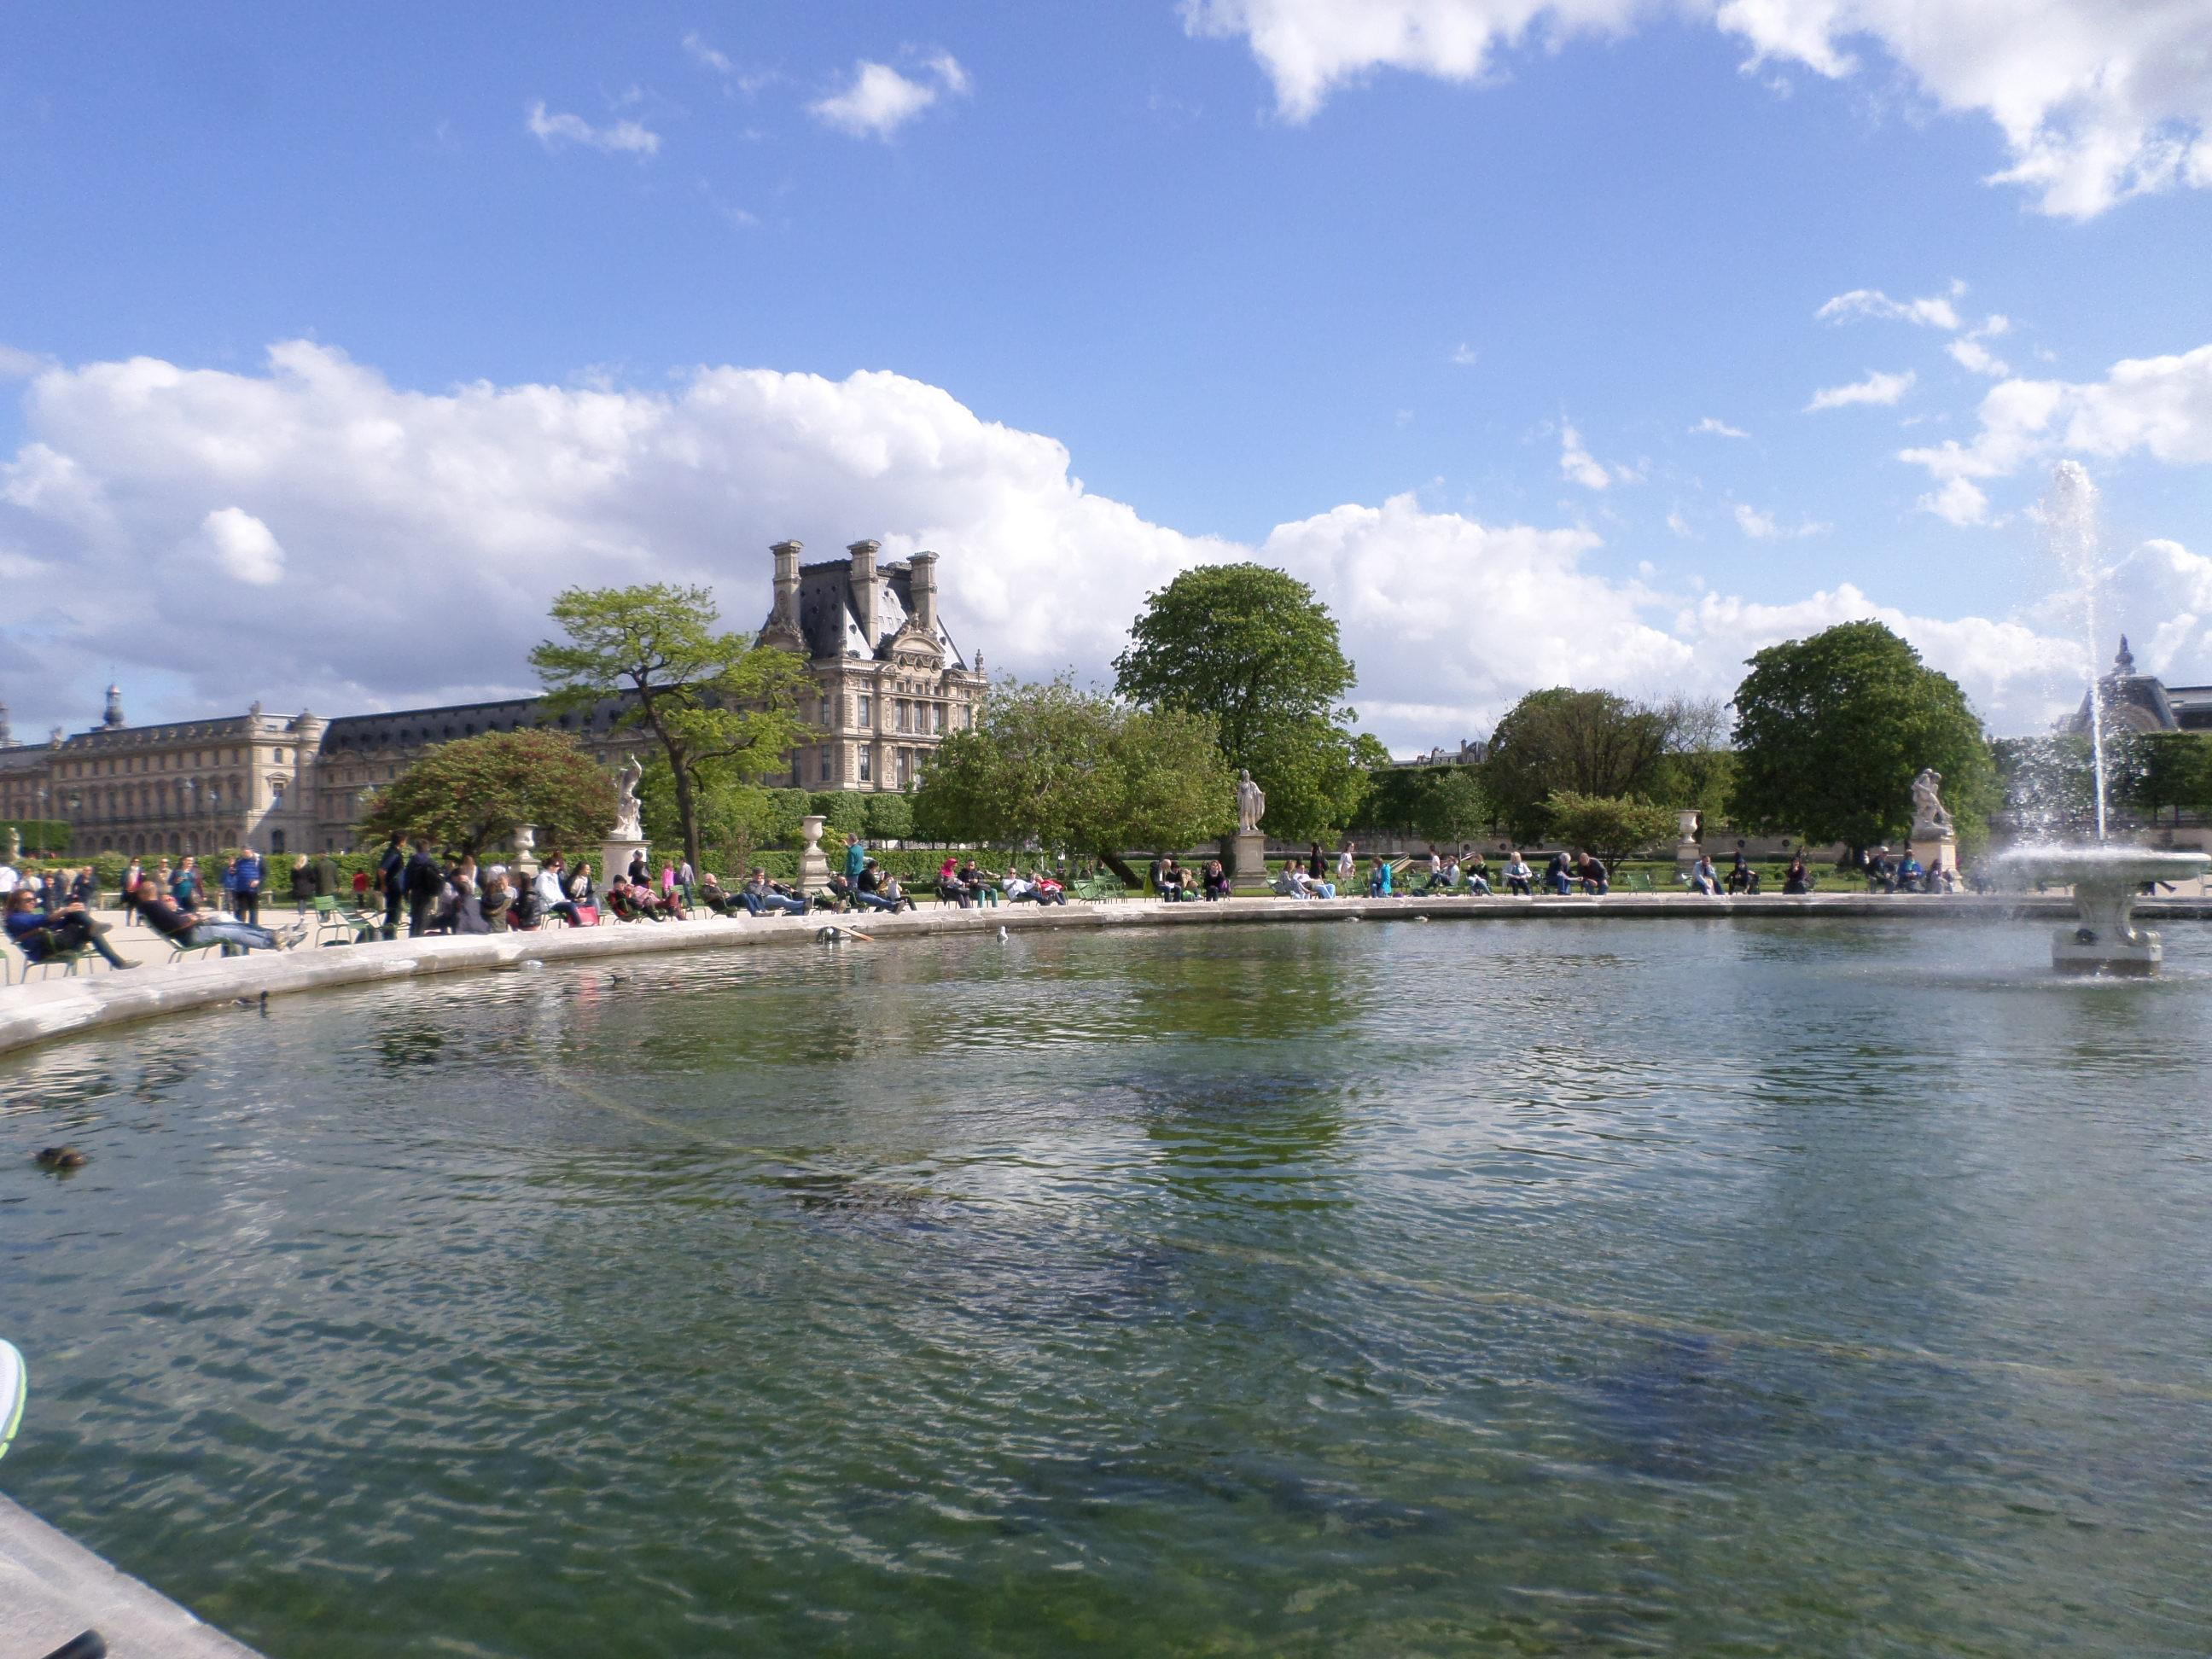 The pond at the Tuileries Garden is a wonderful place to enjoy a spring day in Paris. The